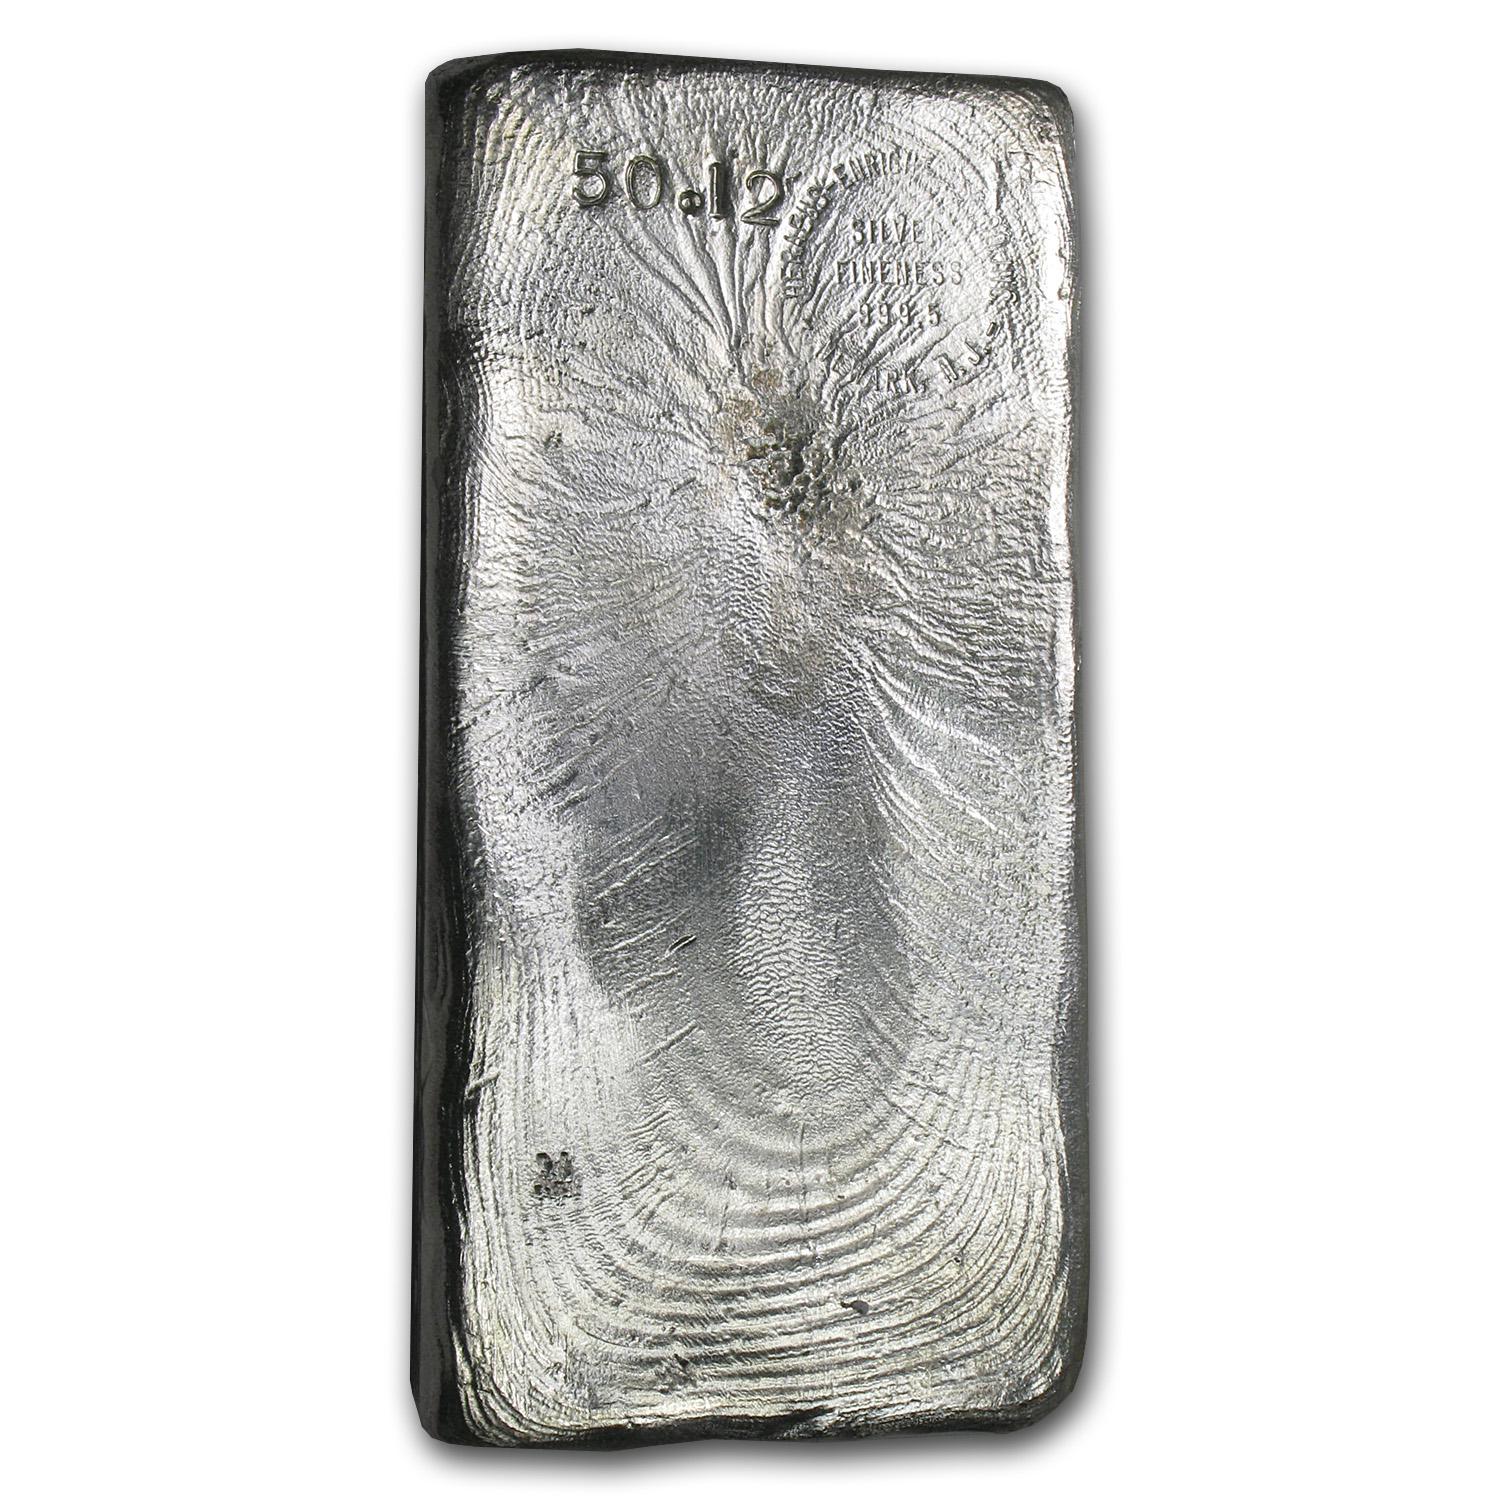 50.12 oz Silver Bars - Heraeus (Poured)